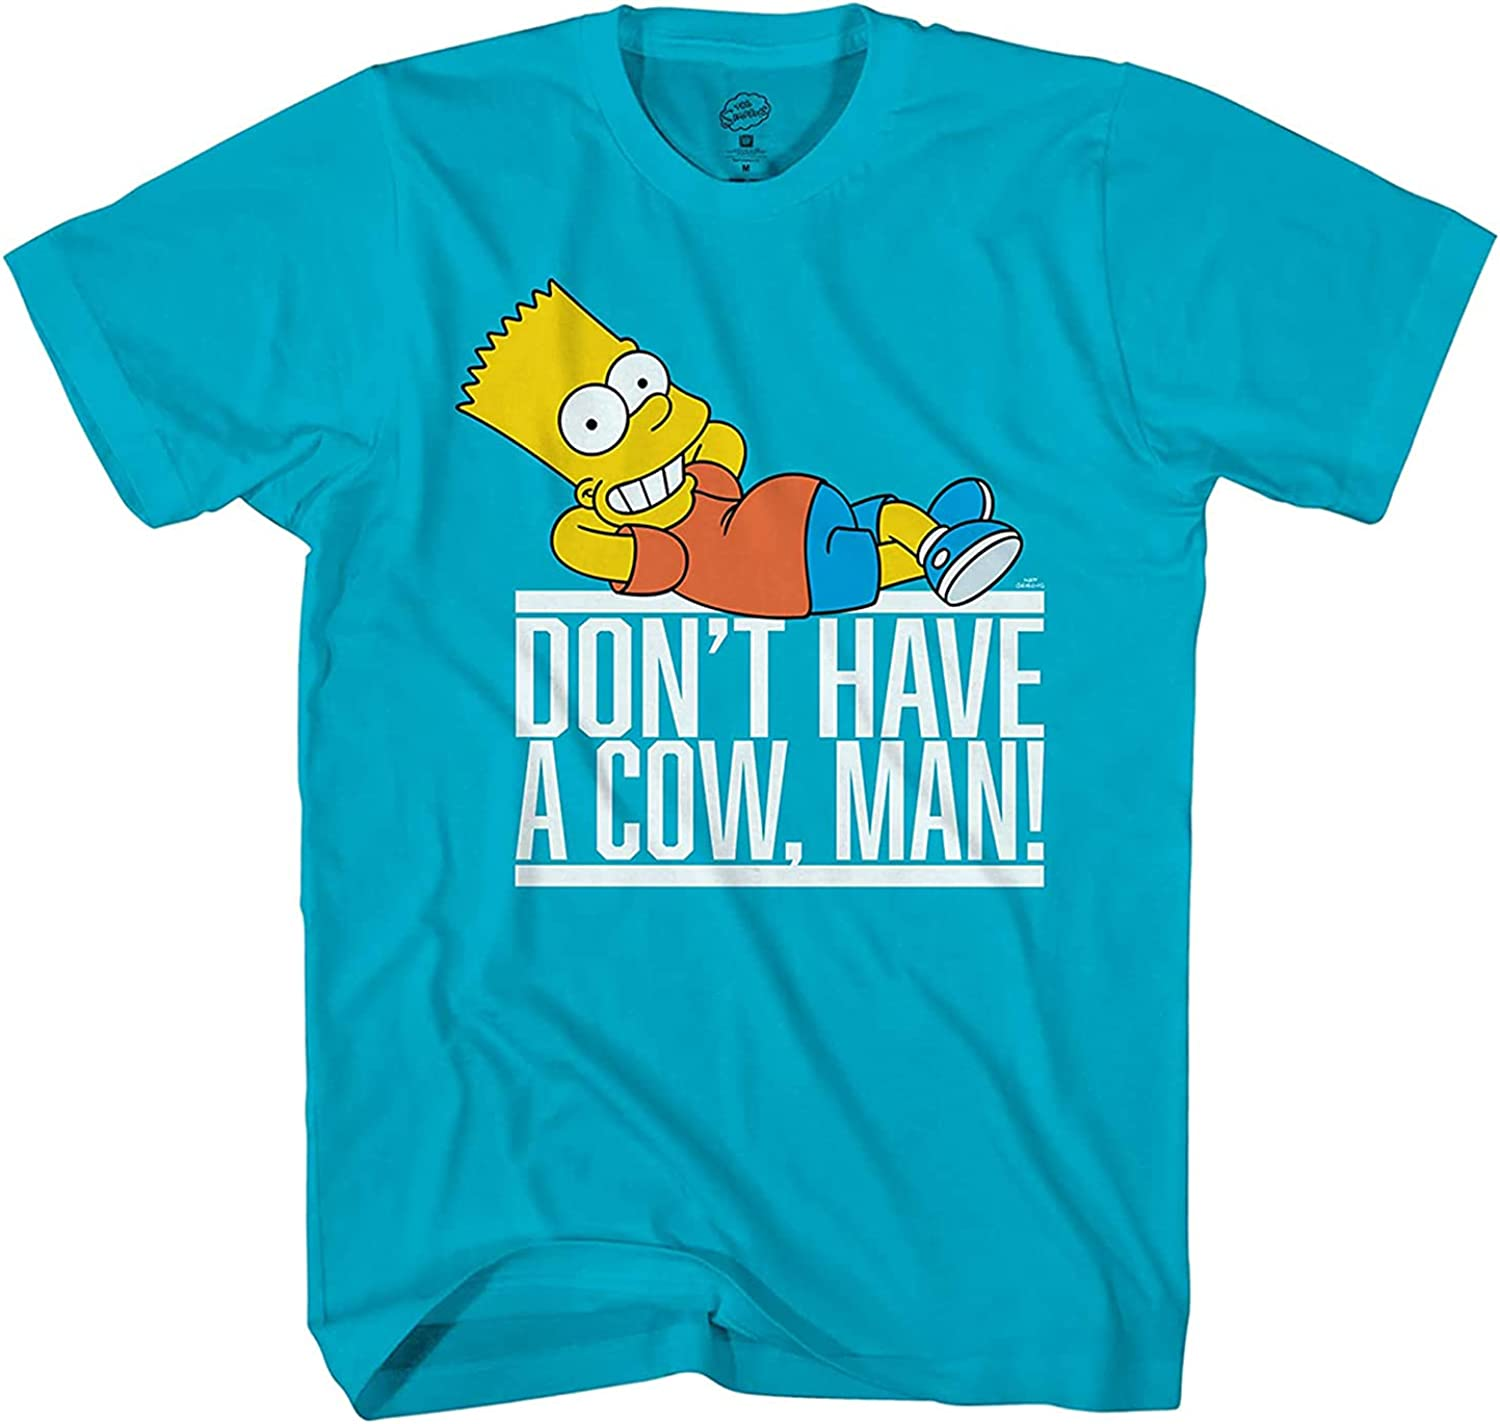 The Simpsons Boys Bart Simpson trust Limited time cheap sale Krusty Shirt Klown - Skating